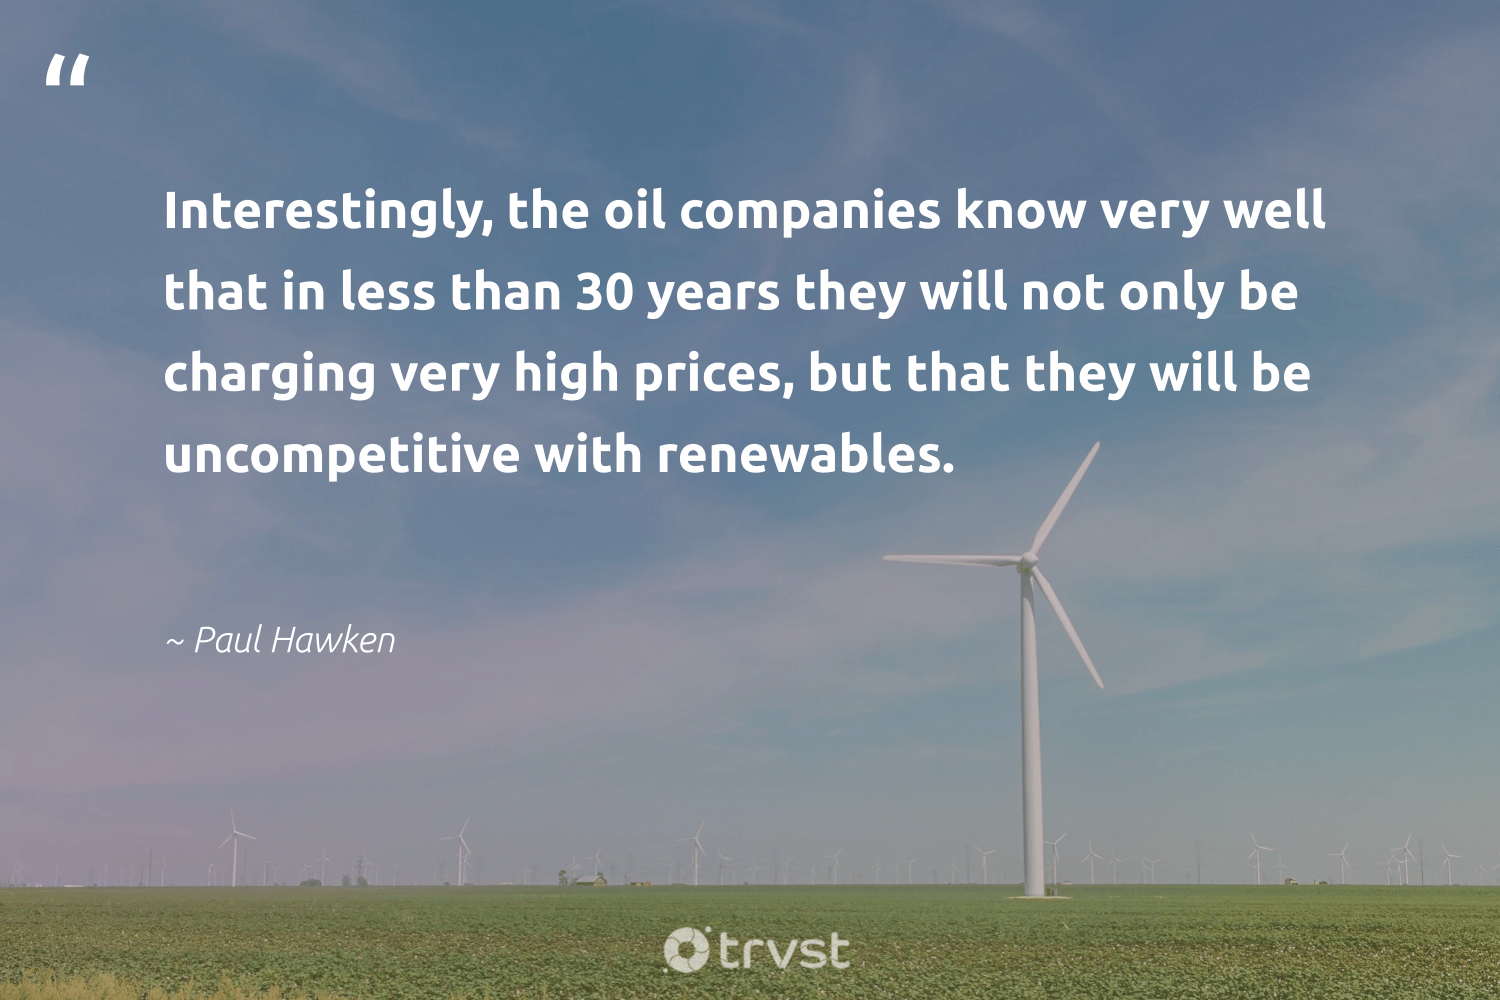 """""""Interestingly, the oil companies know very well that in less than 30 years they will not only be charging very high prices, but that they will be uncompetitive with renewables.""""  - Paul Hawken #trvst #quotes #renewableenergy #renewables #oil #greenenergy #sustainableliving #livegreen #ecoconscious #renewable #zerocarbon #sustainable"""